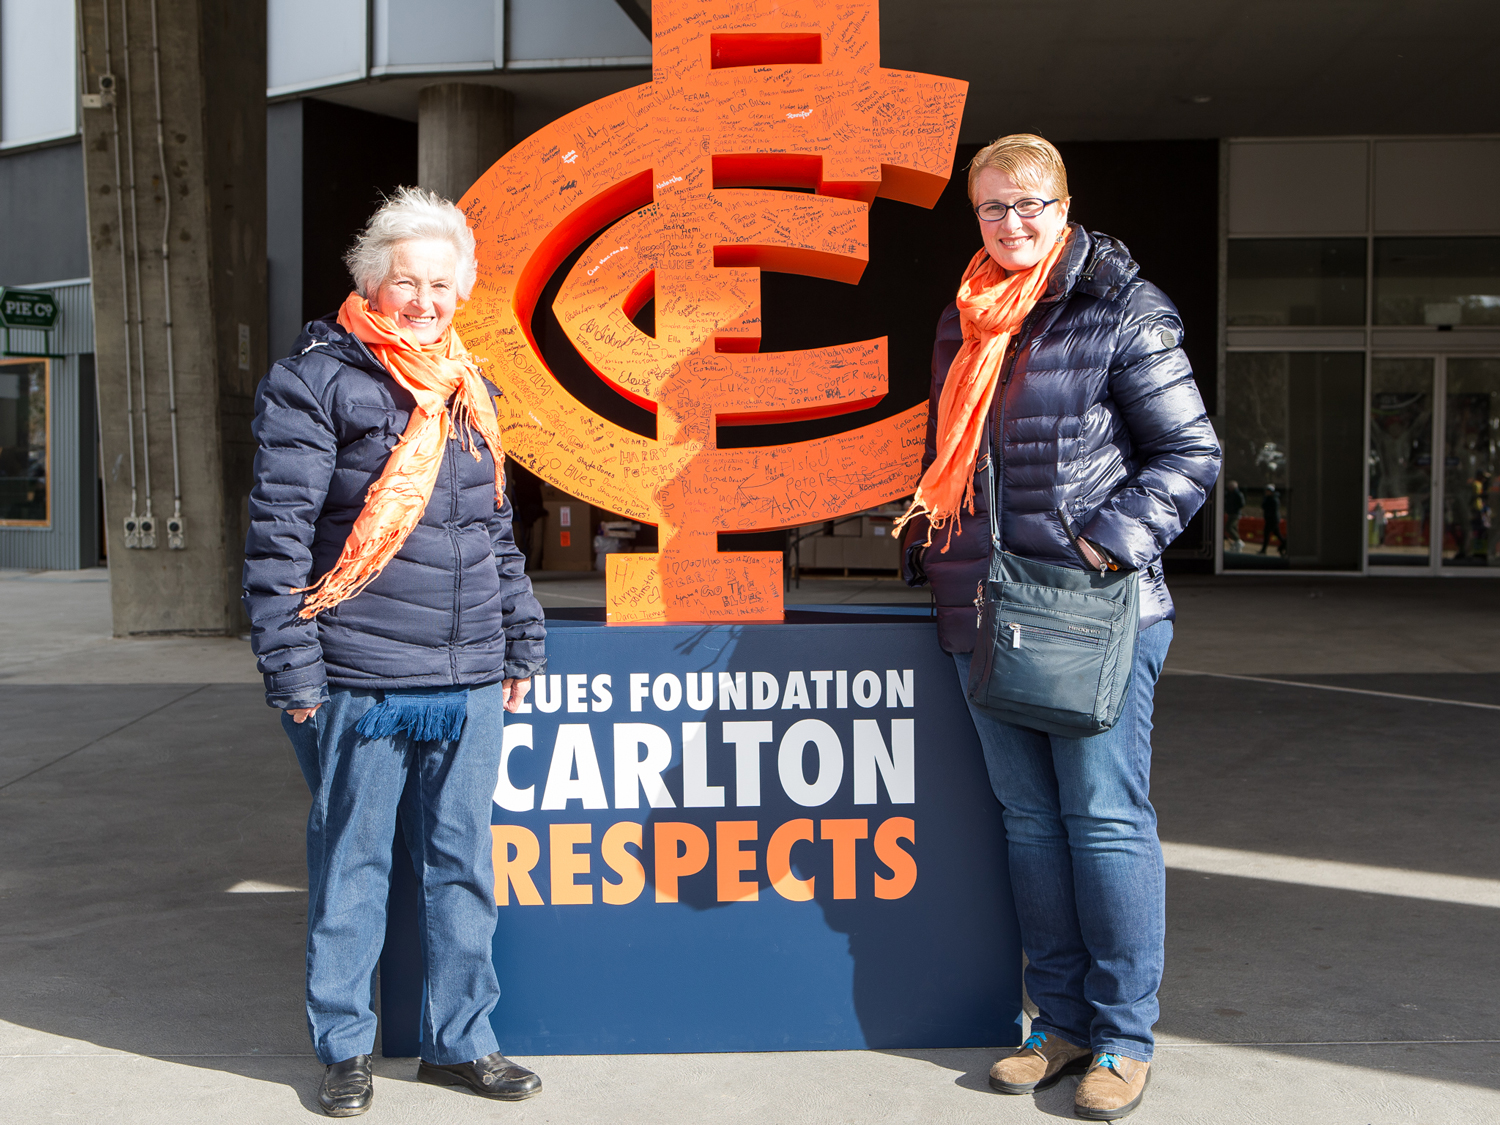 Supporters next to their pledge on the CARLTON RESPECTS monogram